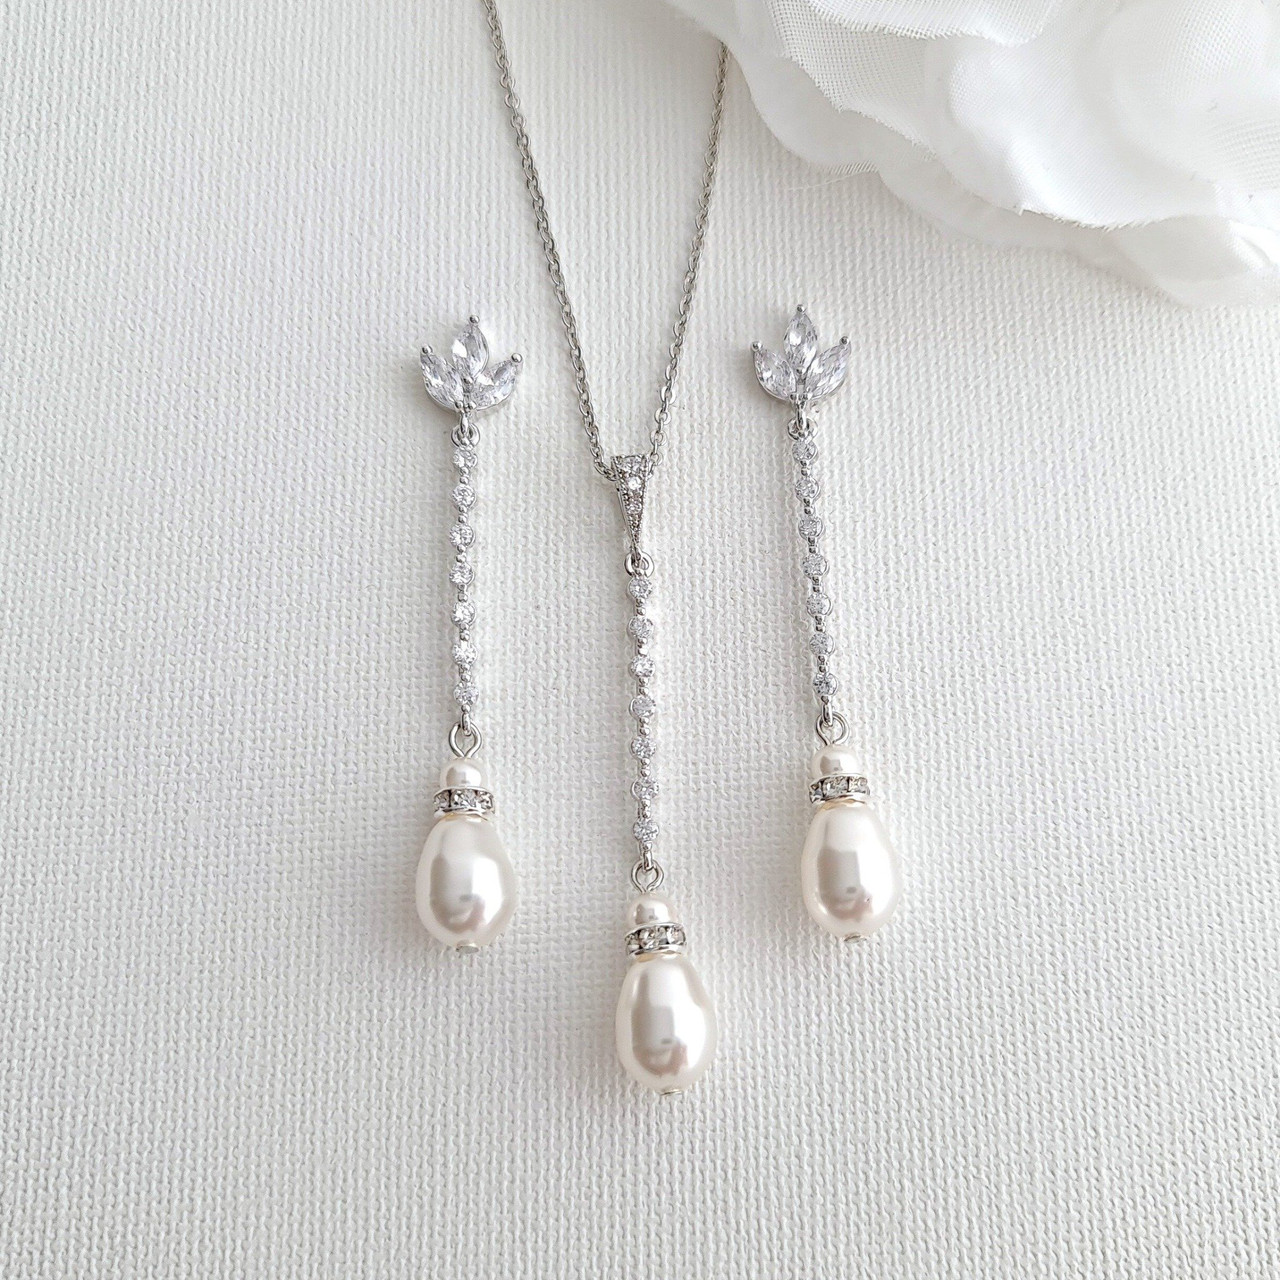 Earrings Necklace Set Small Delicate Teardrop and Pearl Bridal ...